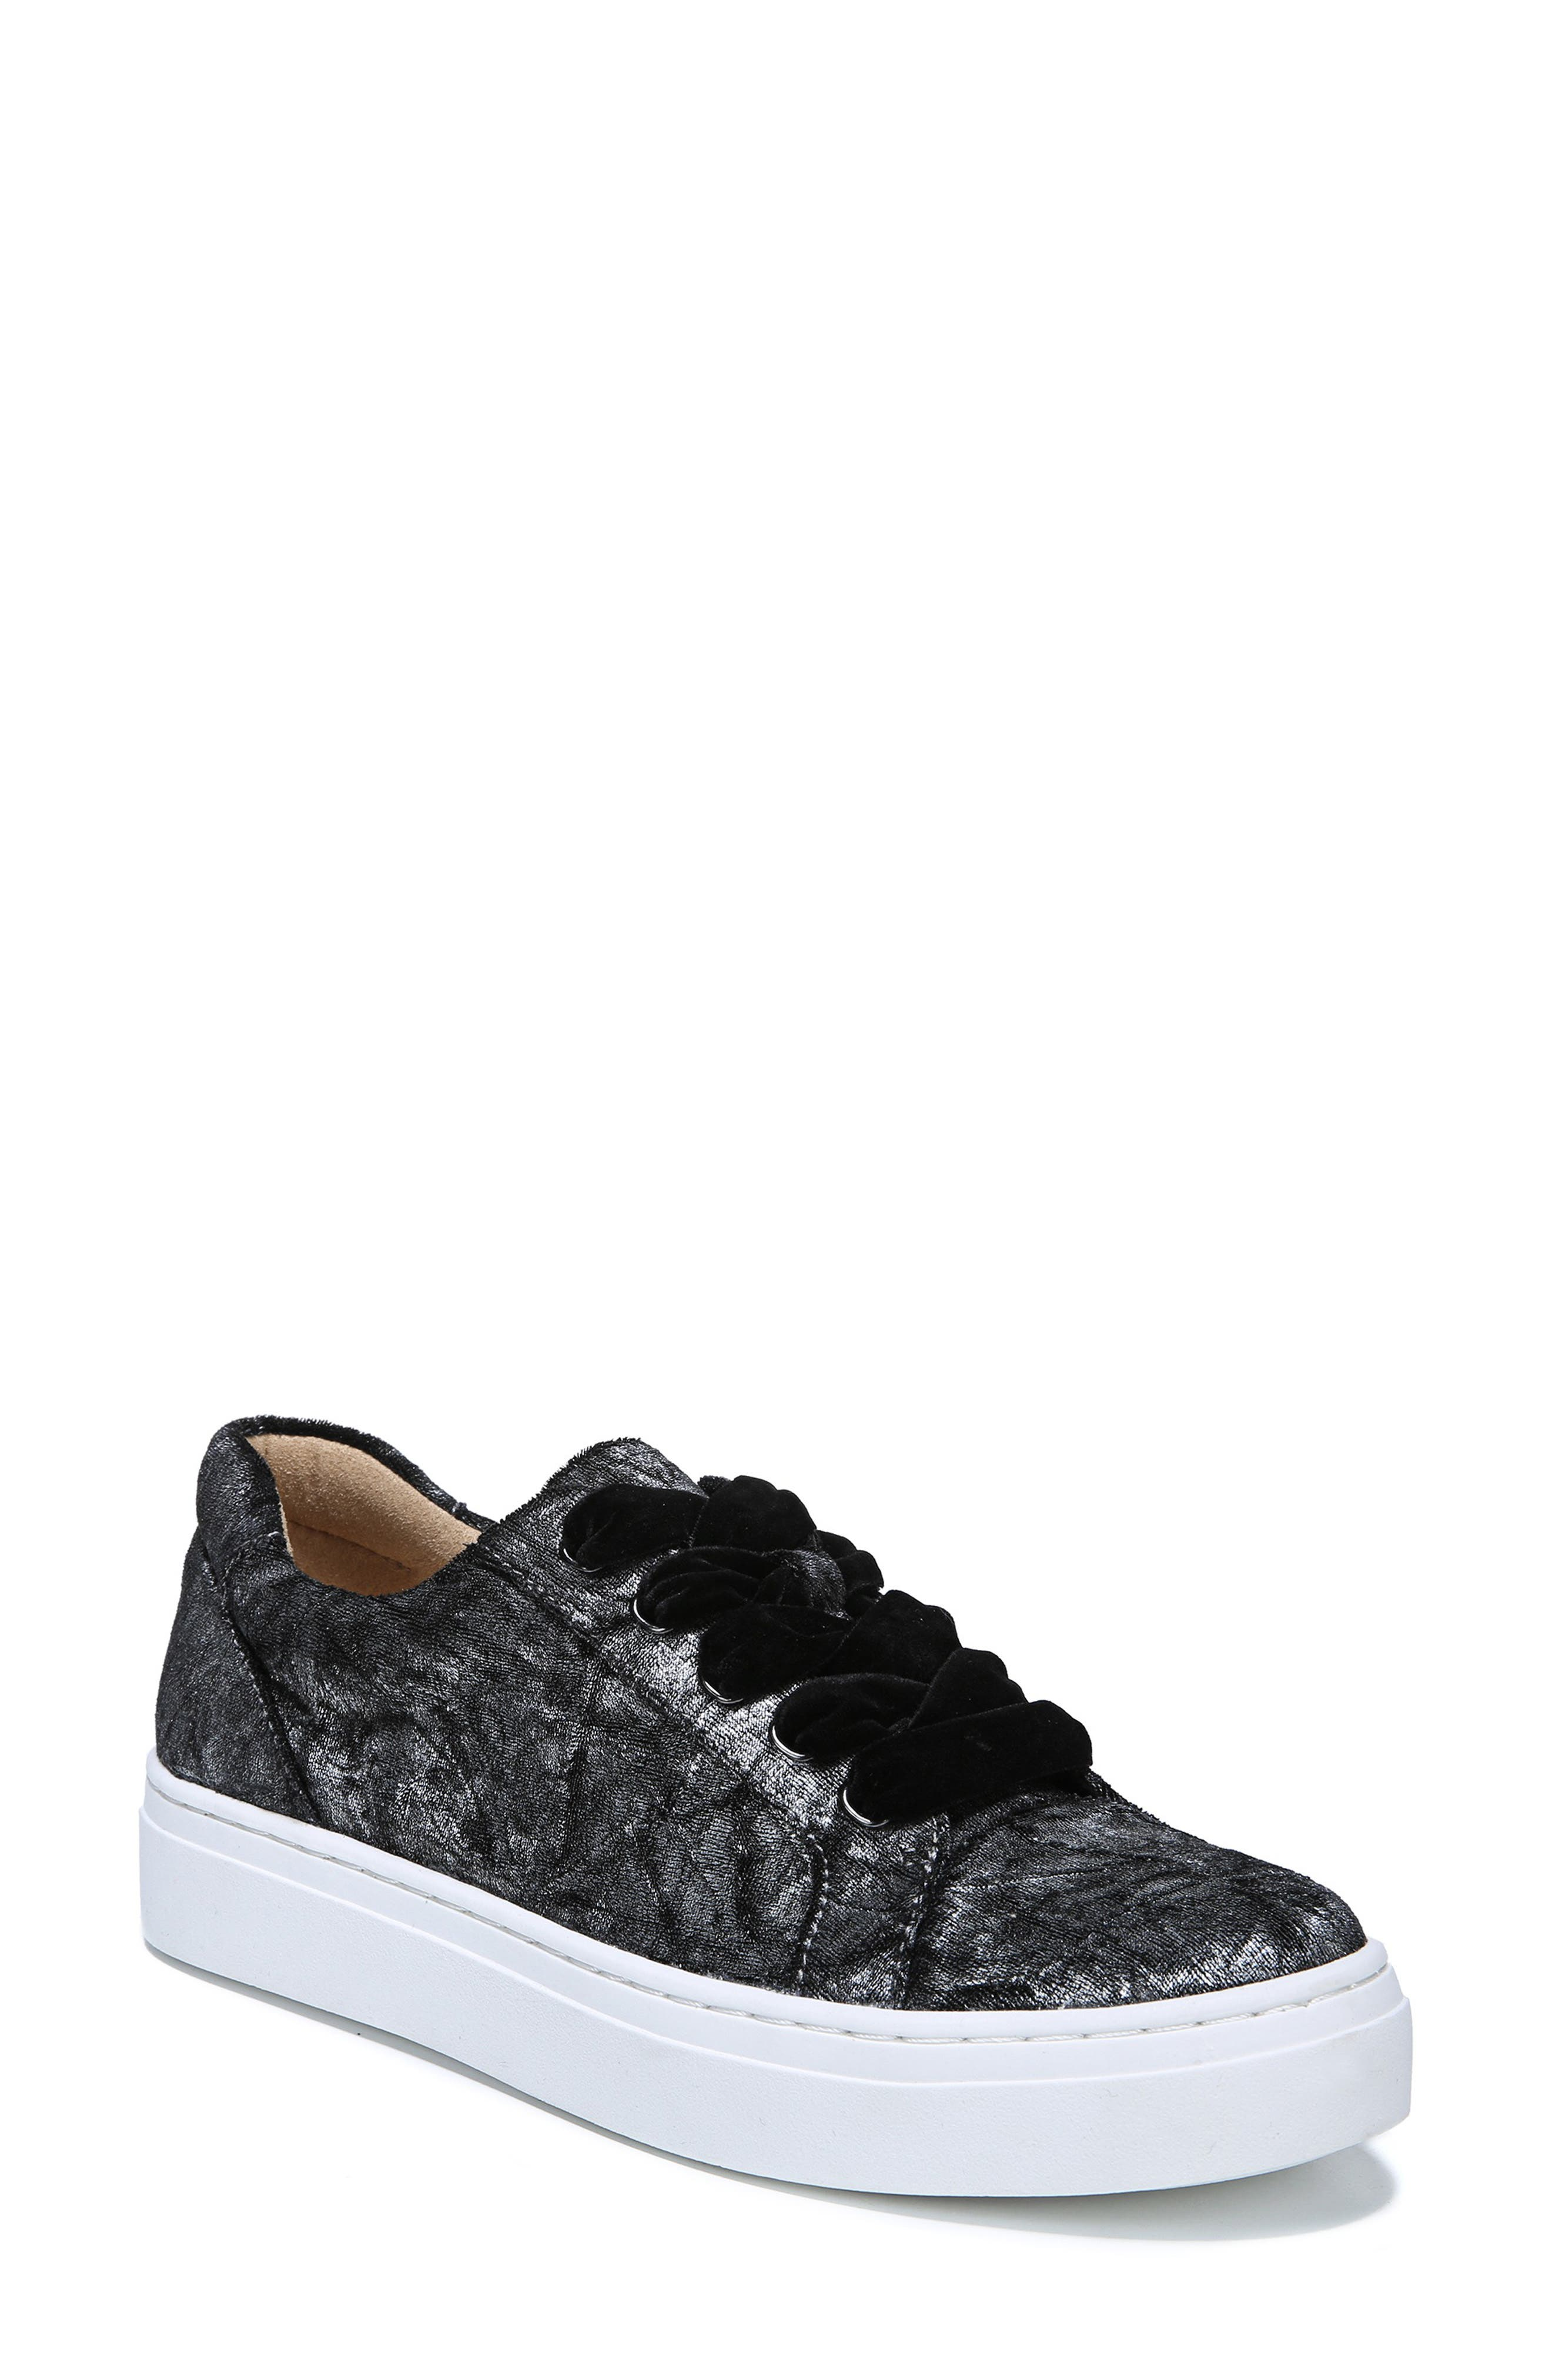 Naturalizer Cairo Sneaker, Metallic